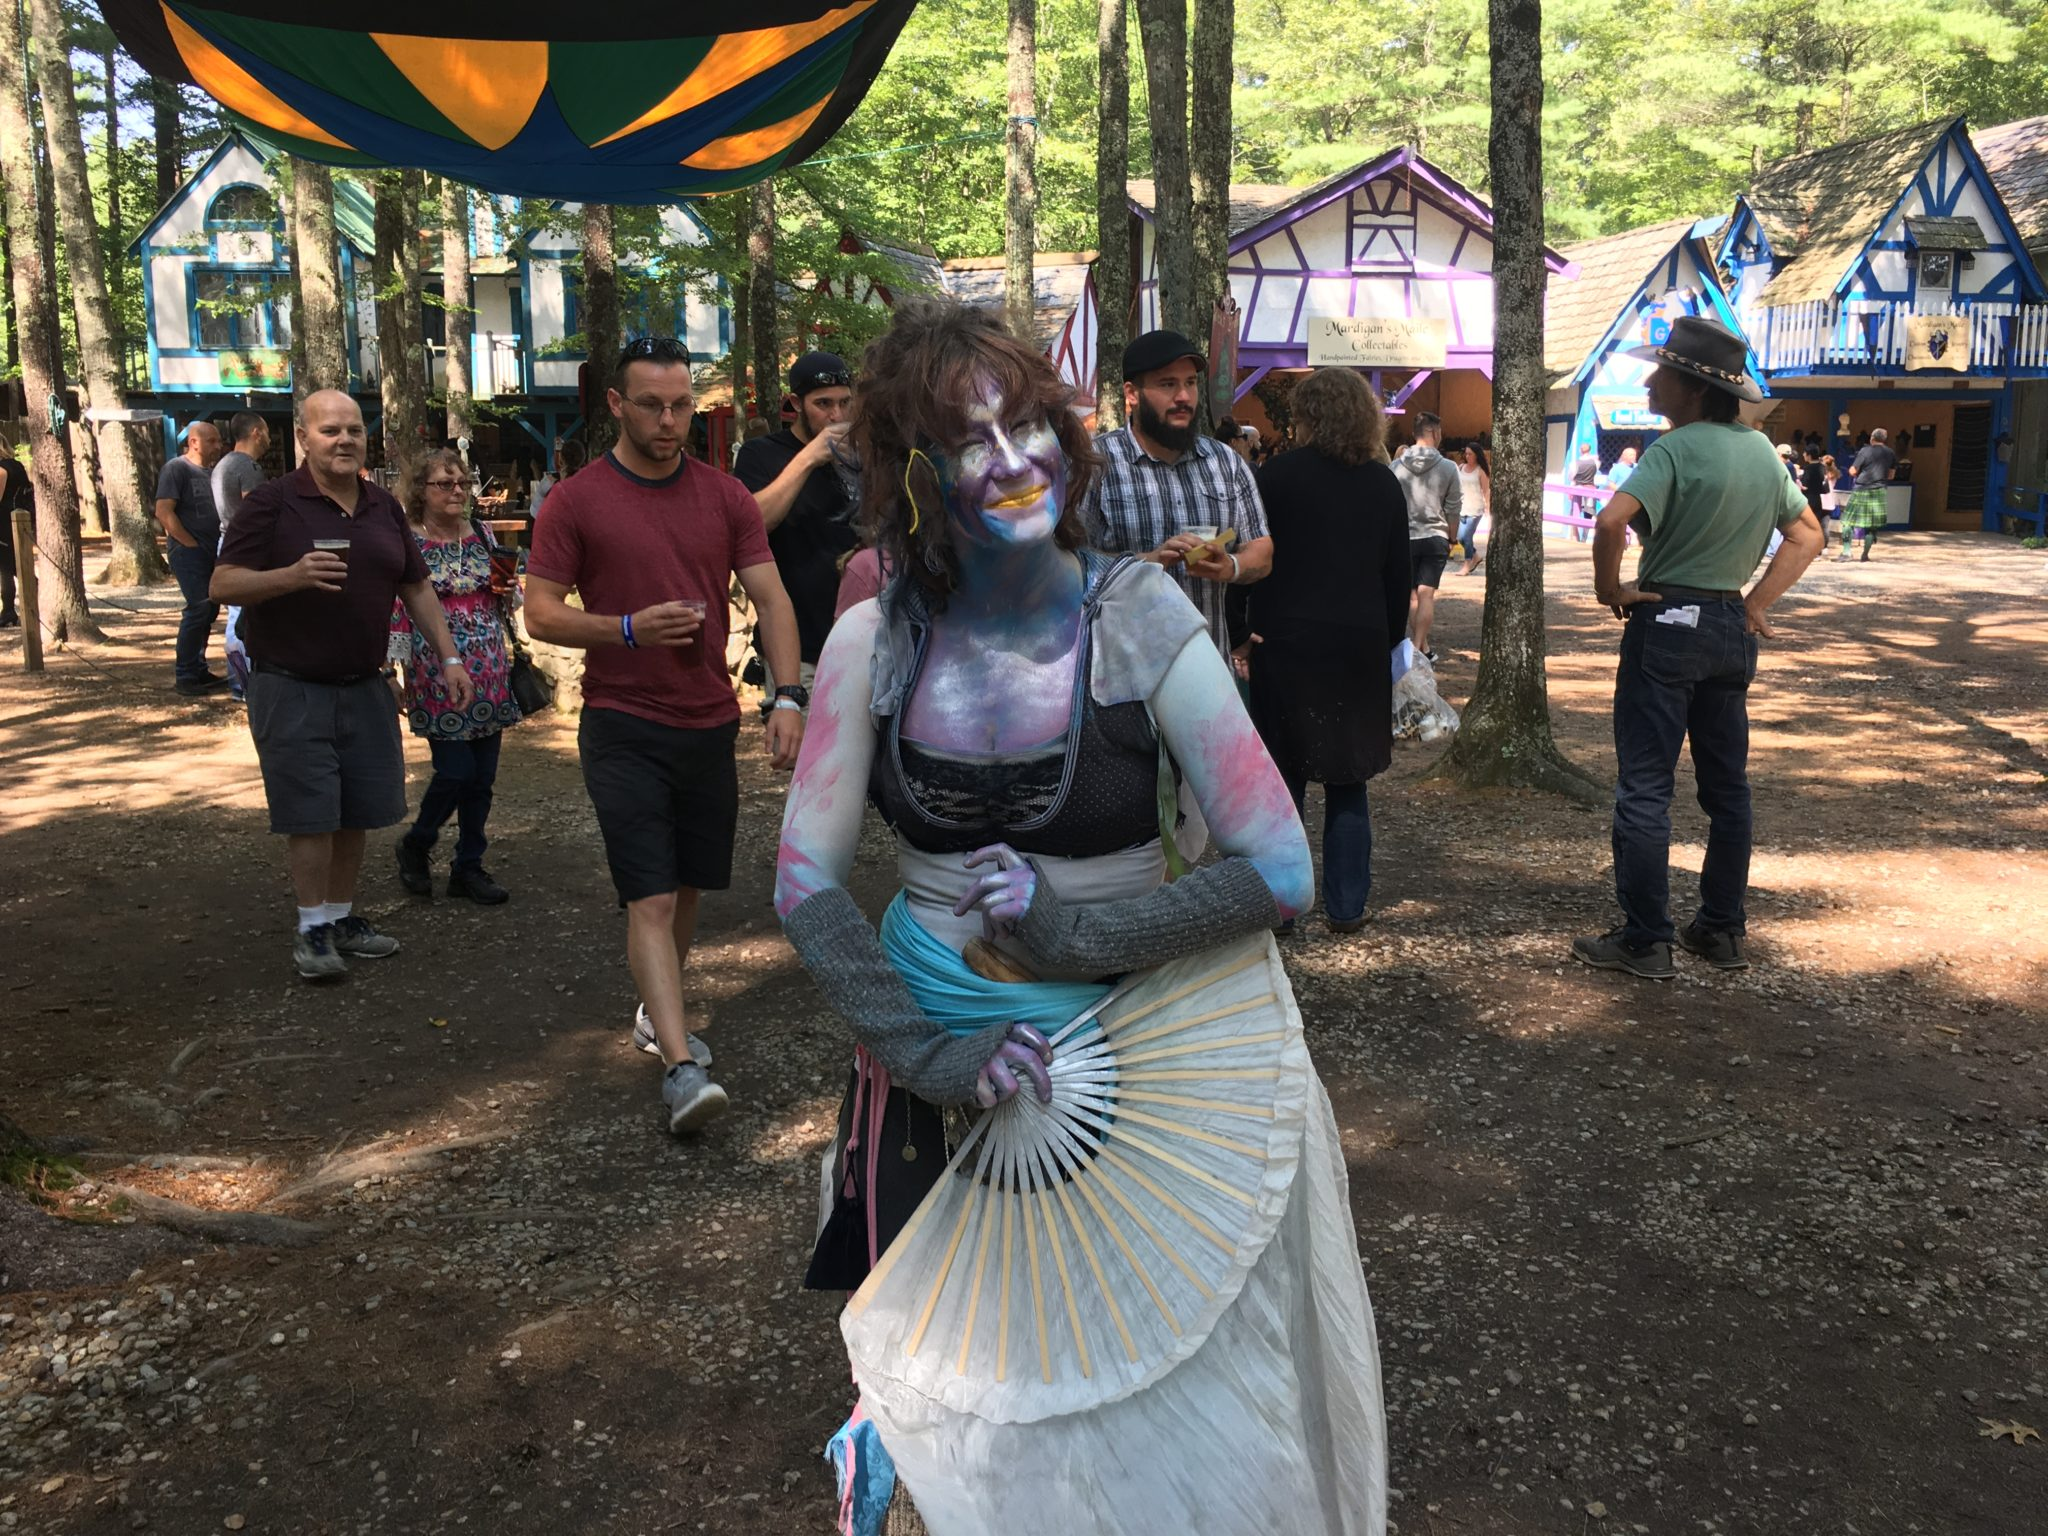 Cosplay galore at King Richard's Faire!